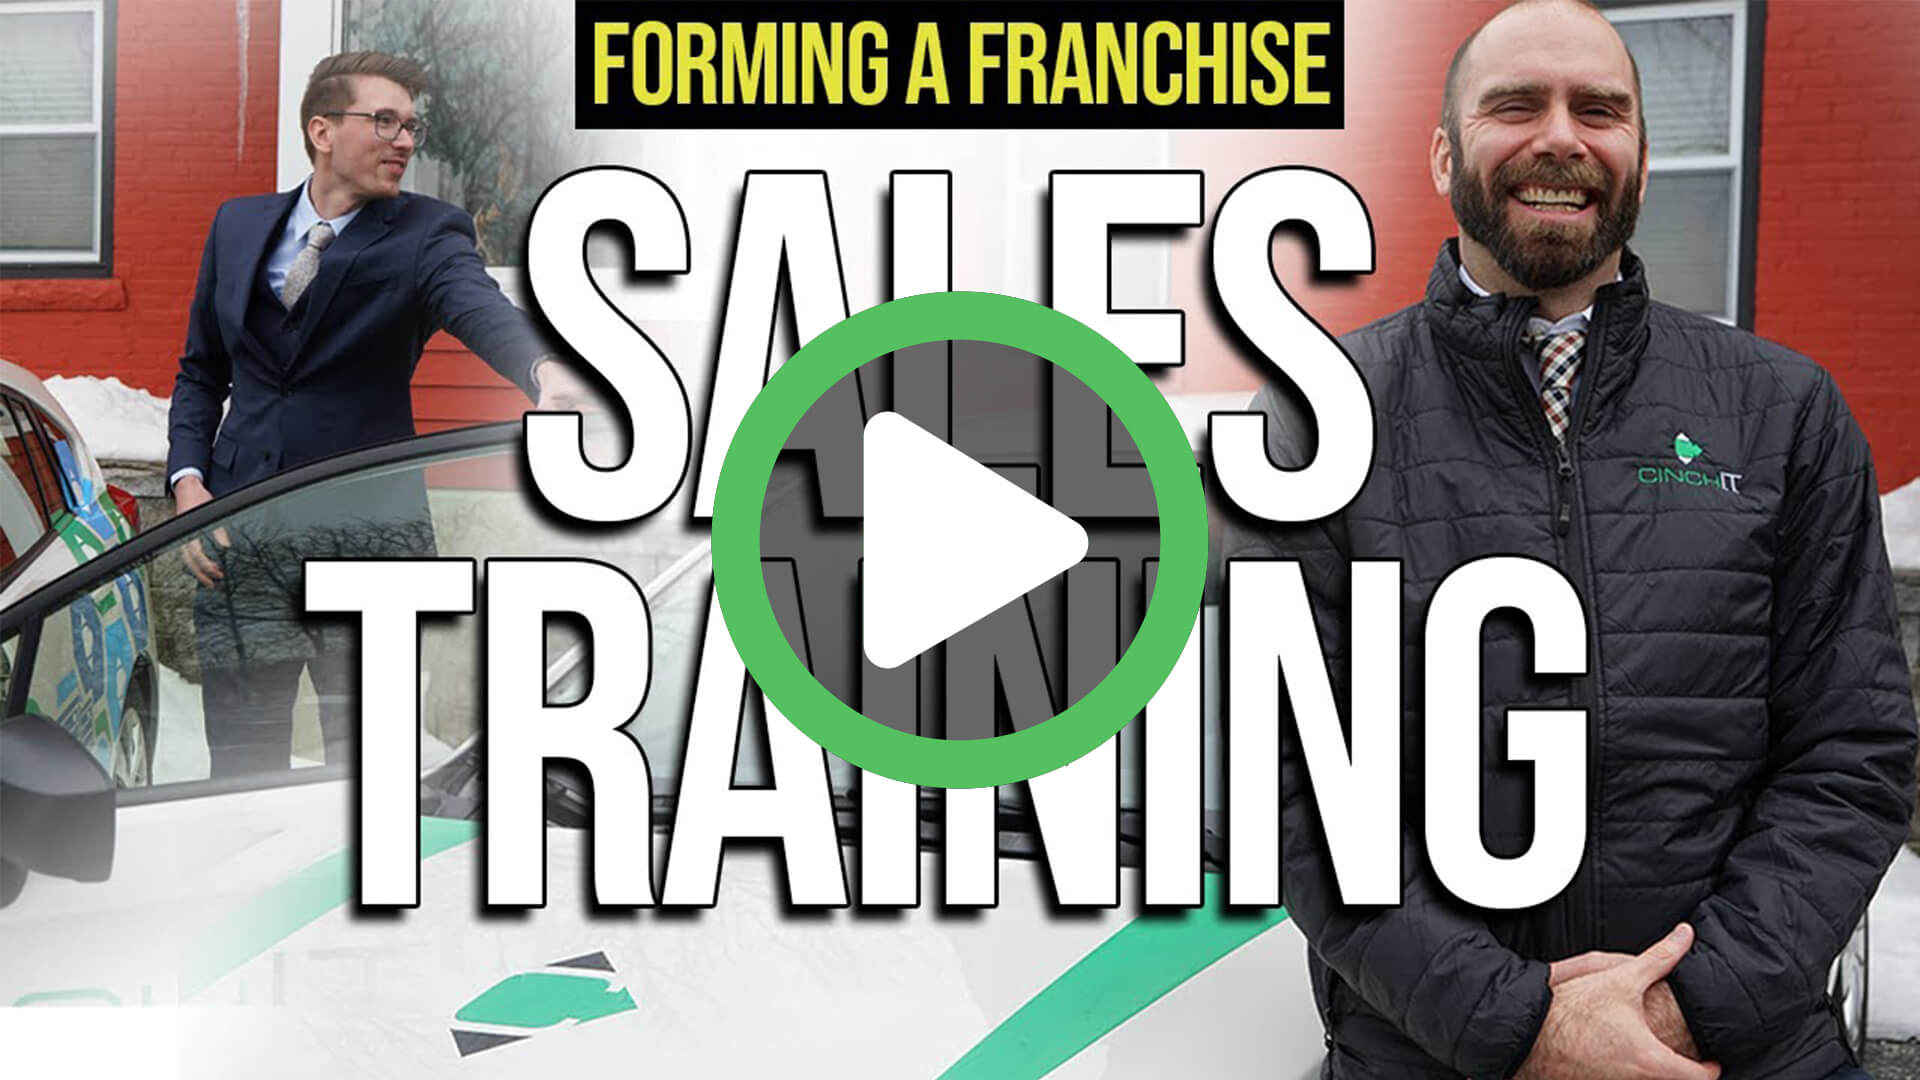 S3 EP2: Sales Training | A Franchise Designed For Sales Professionals